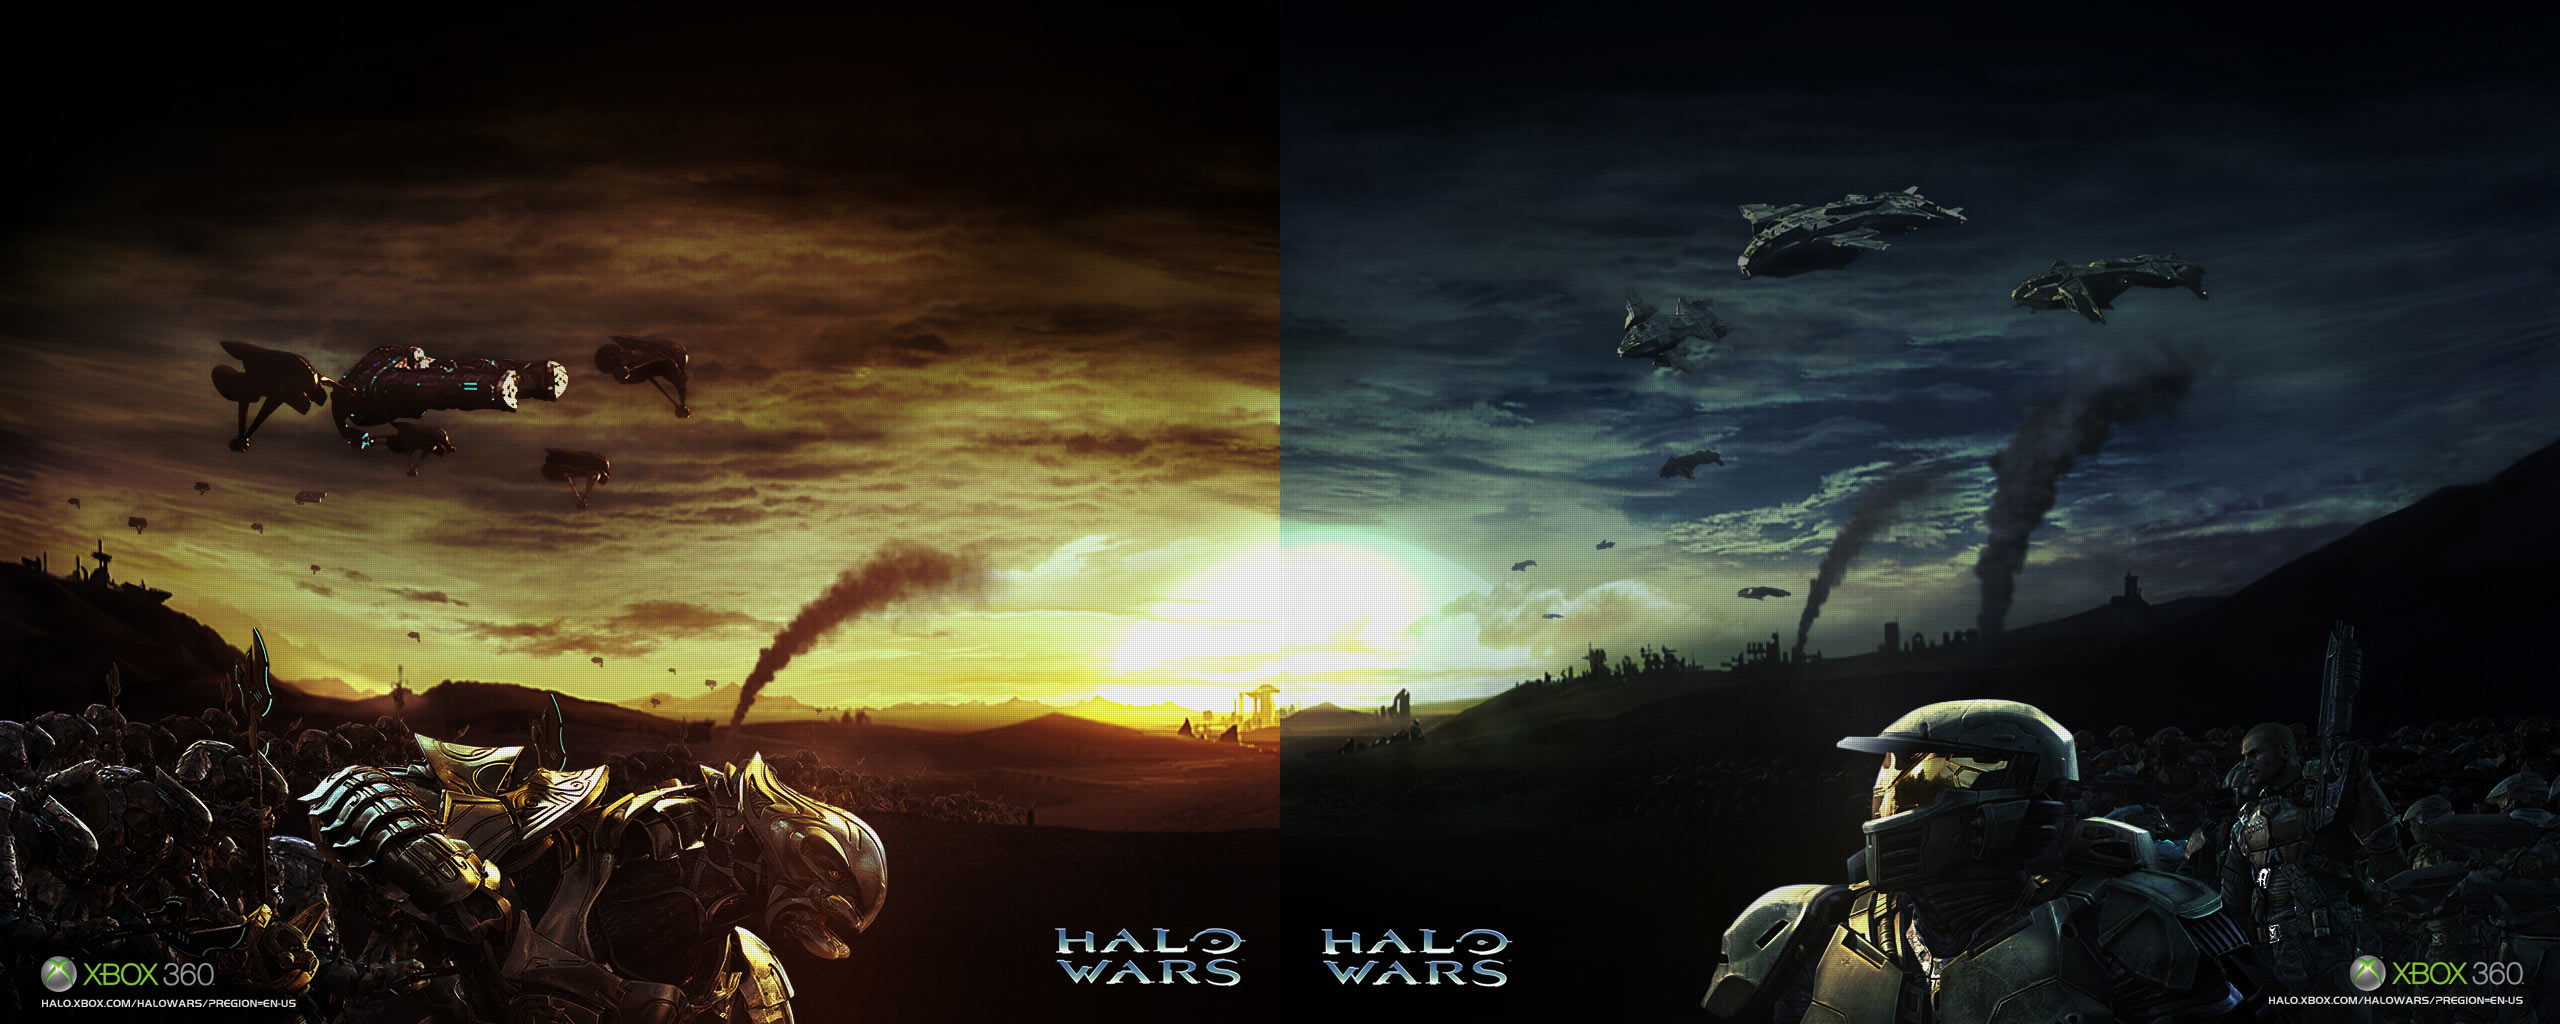 Halo Wars 2 Wallpaper: Halo Wars 2 Wallpaper